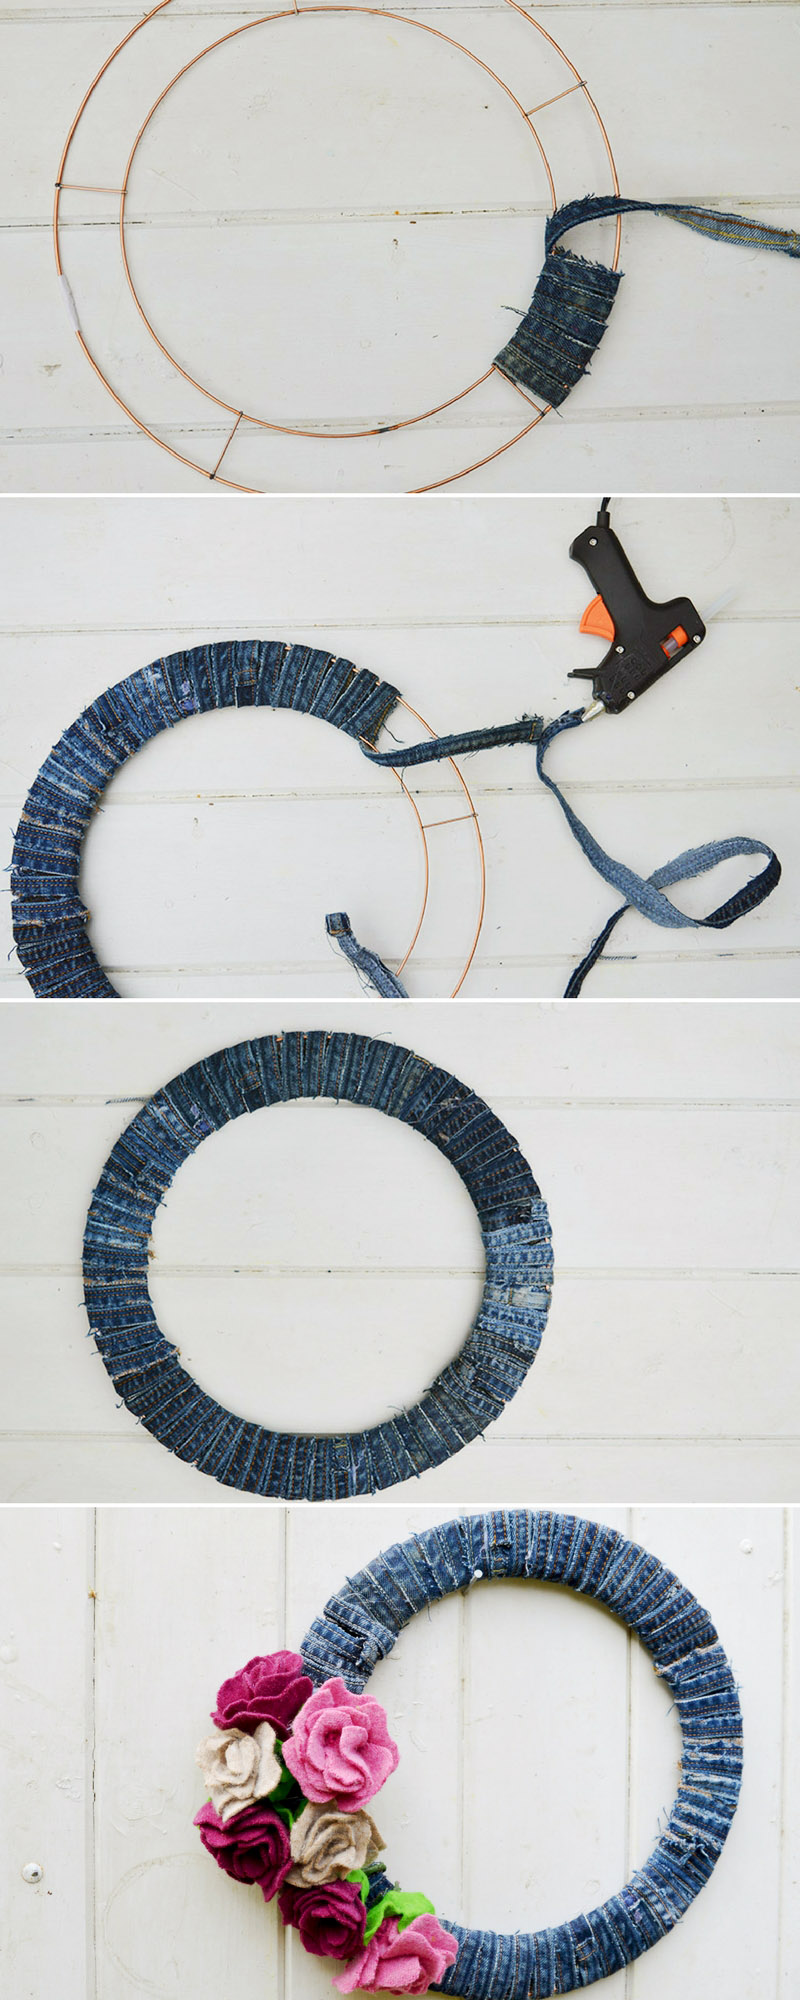 Putting together your recycled jeans wreath by adding the DIY sweater felt roses.